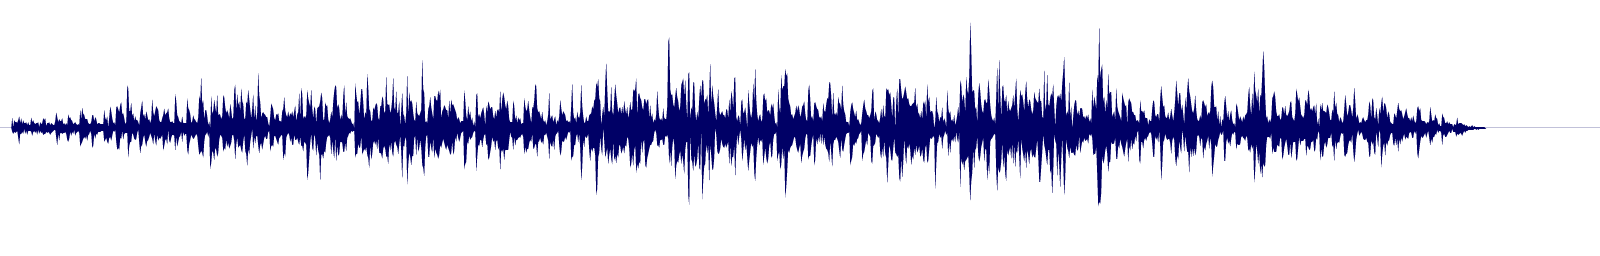 waveform of track #130084